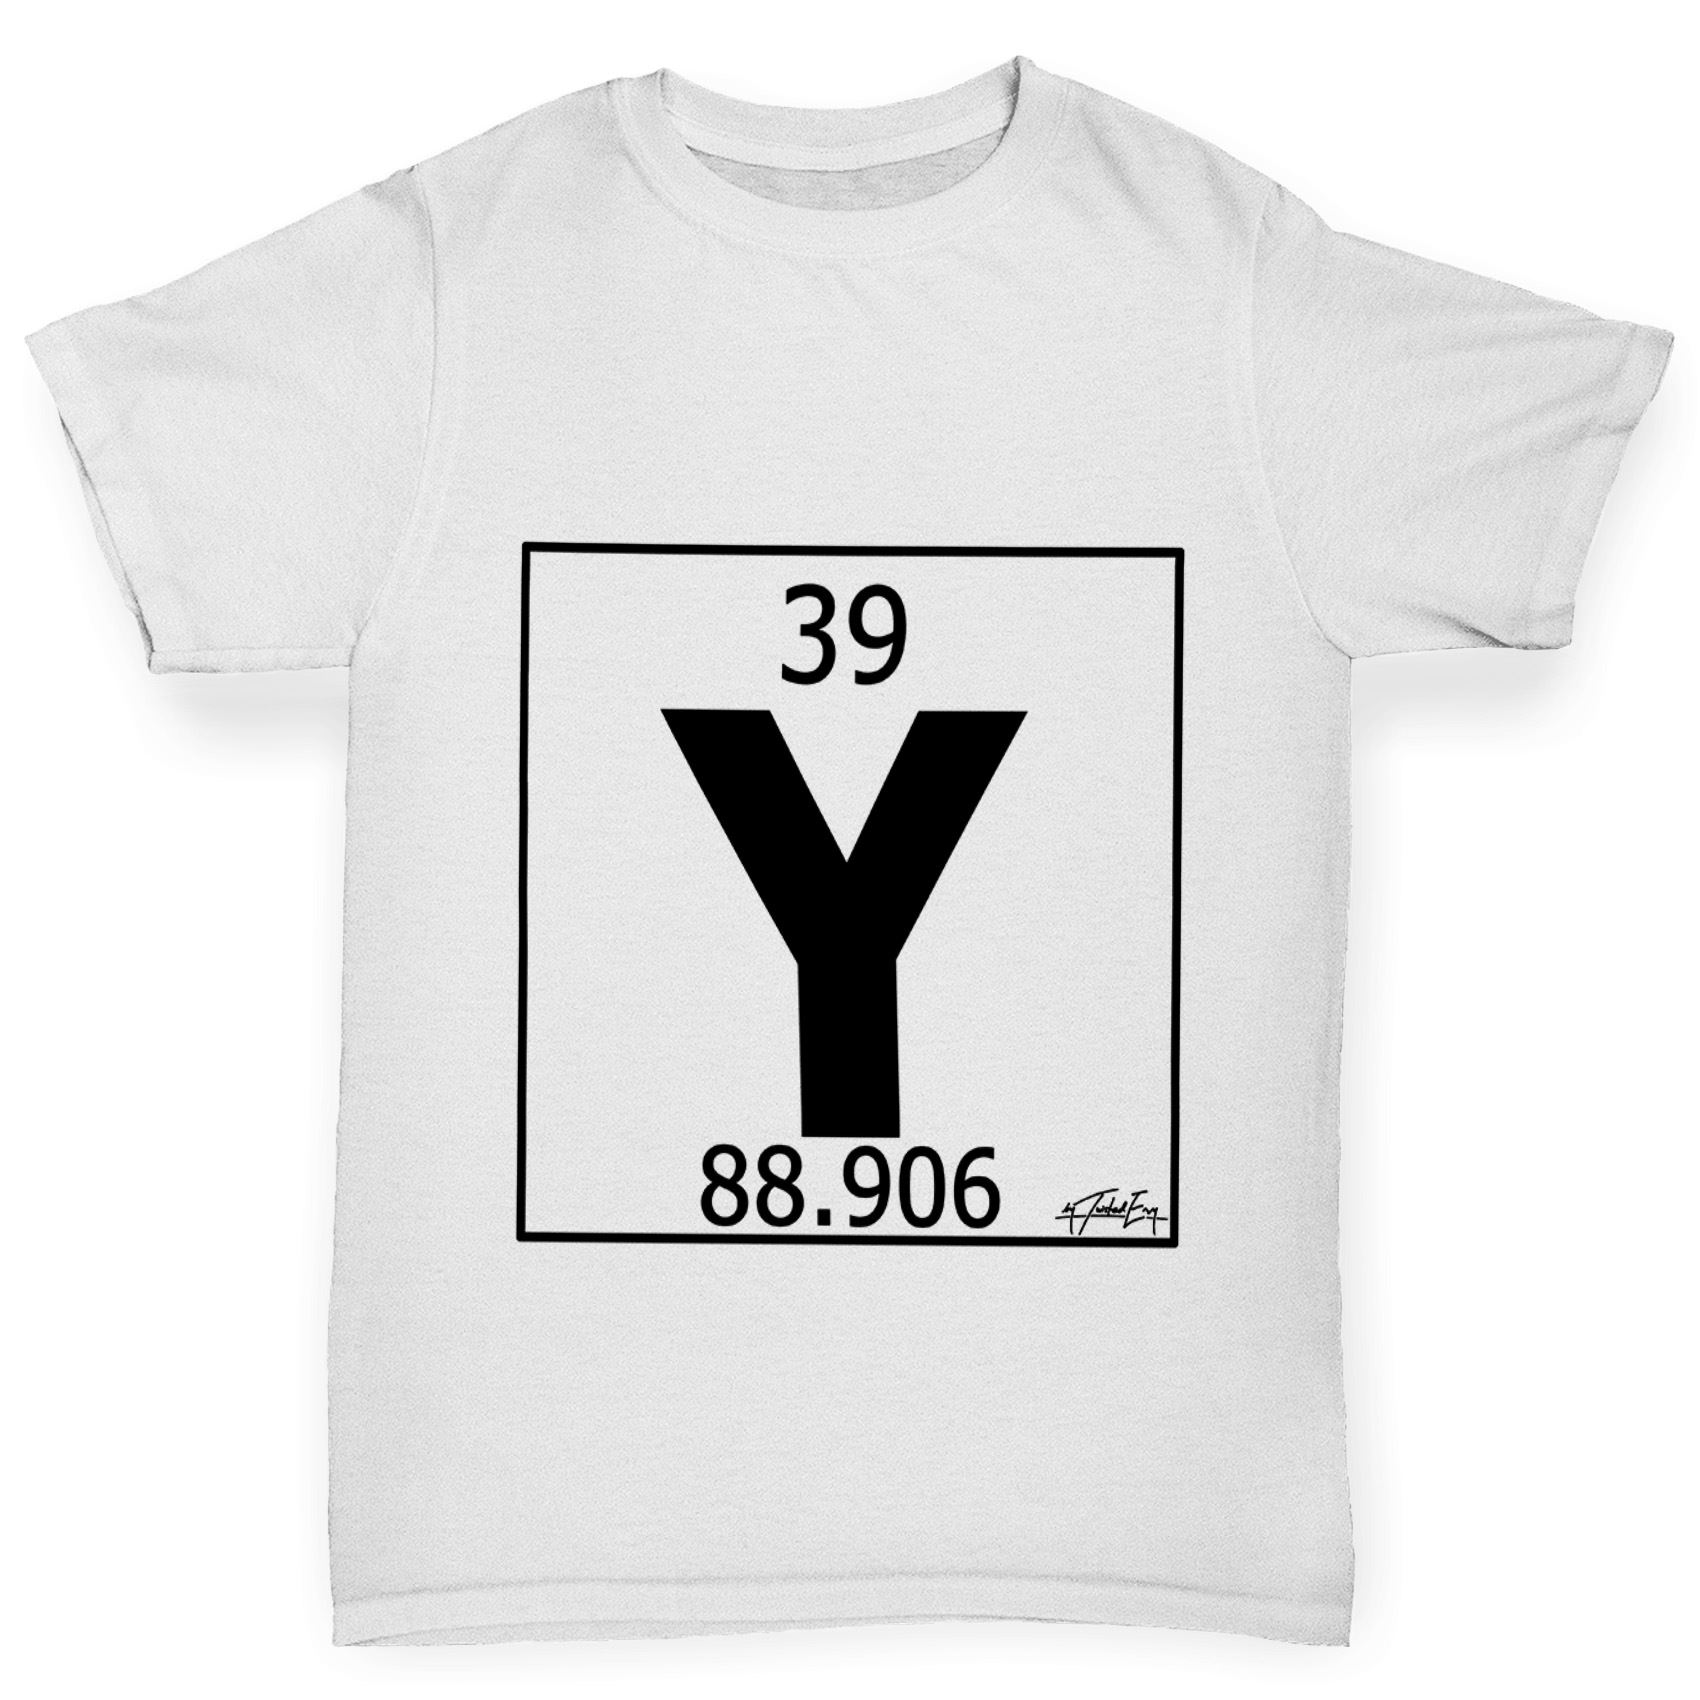 Y element periodic table gallery periodic table images element y periodic table image collections periodic table images twisted envy boys periodic table element y gamestrikefo Gallery